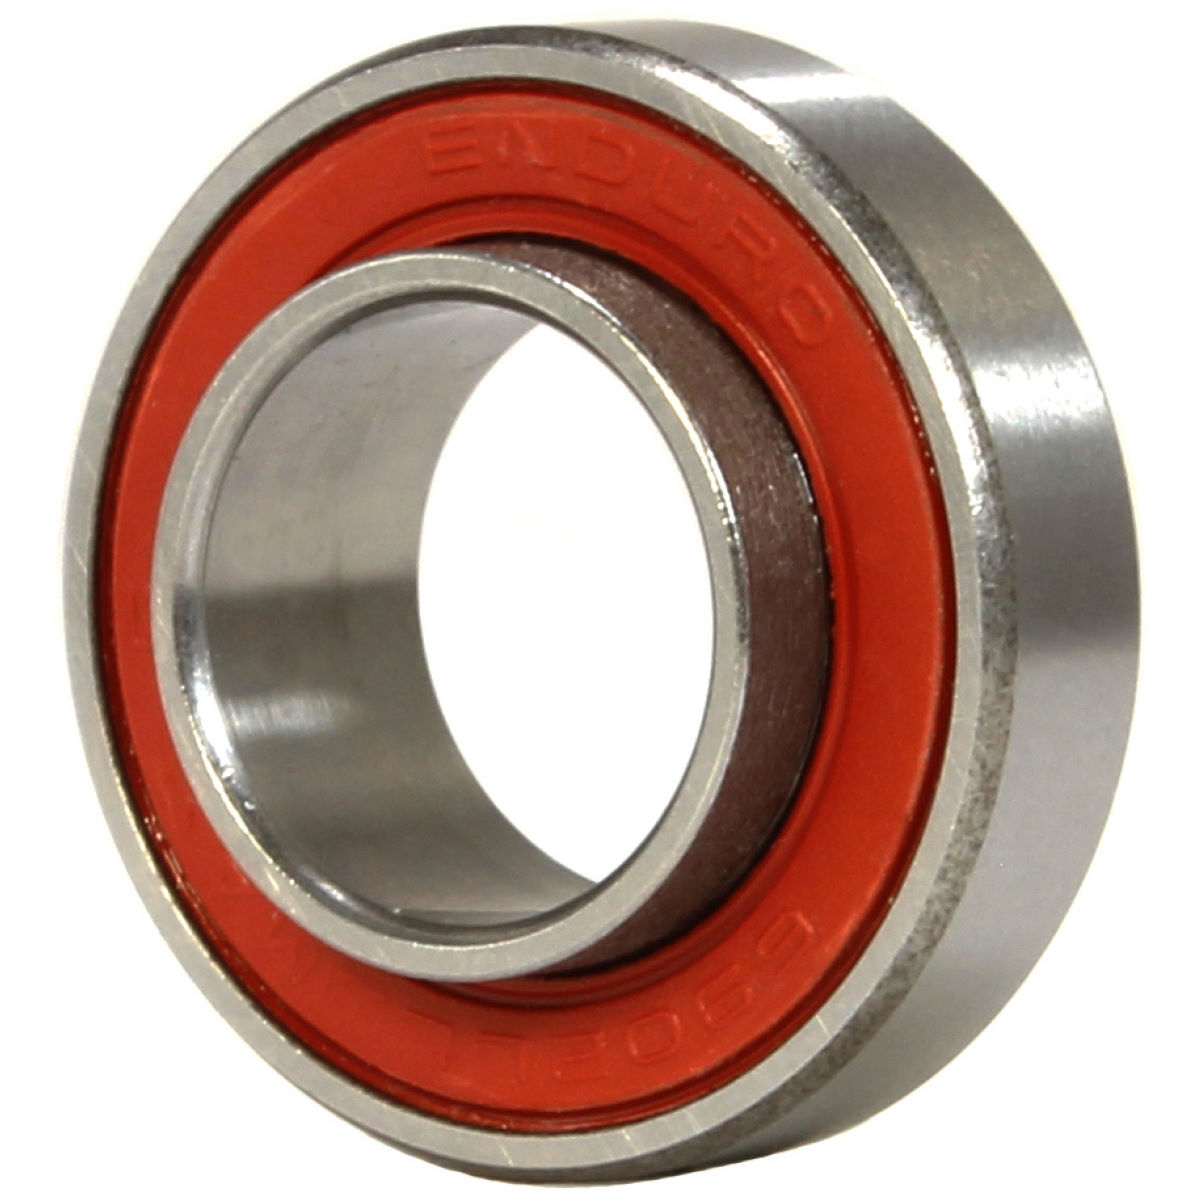 Enduro Bearings Enduro Bearings ABEC3 6902 LLB Max-E Bearing   Headsets